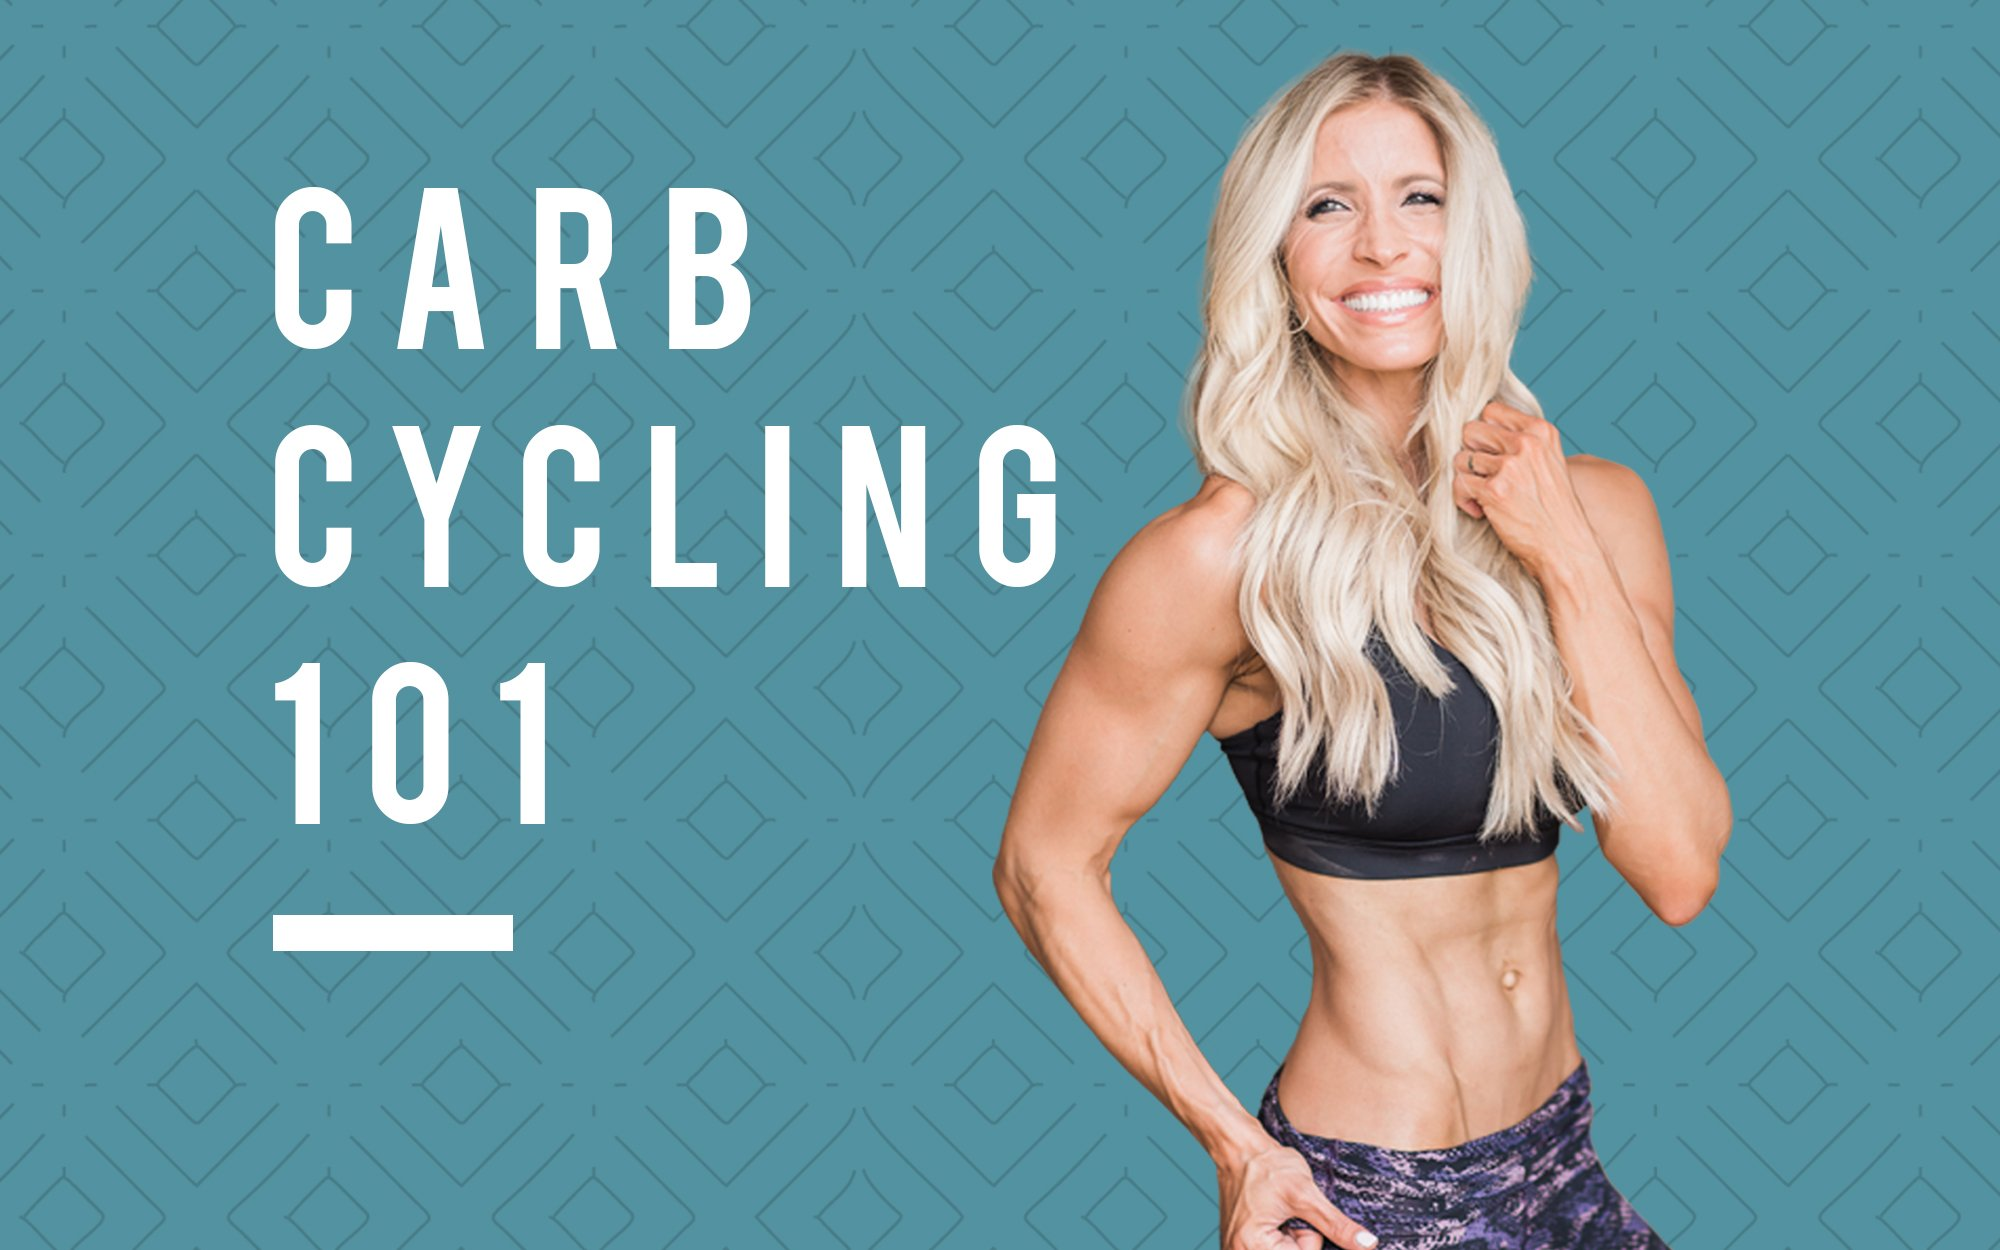 f23d111fa0e Carb Cycling 101 - Heidi Powell